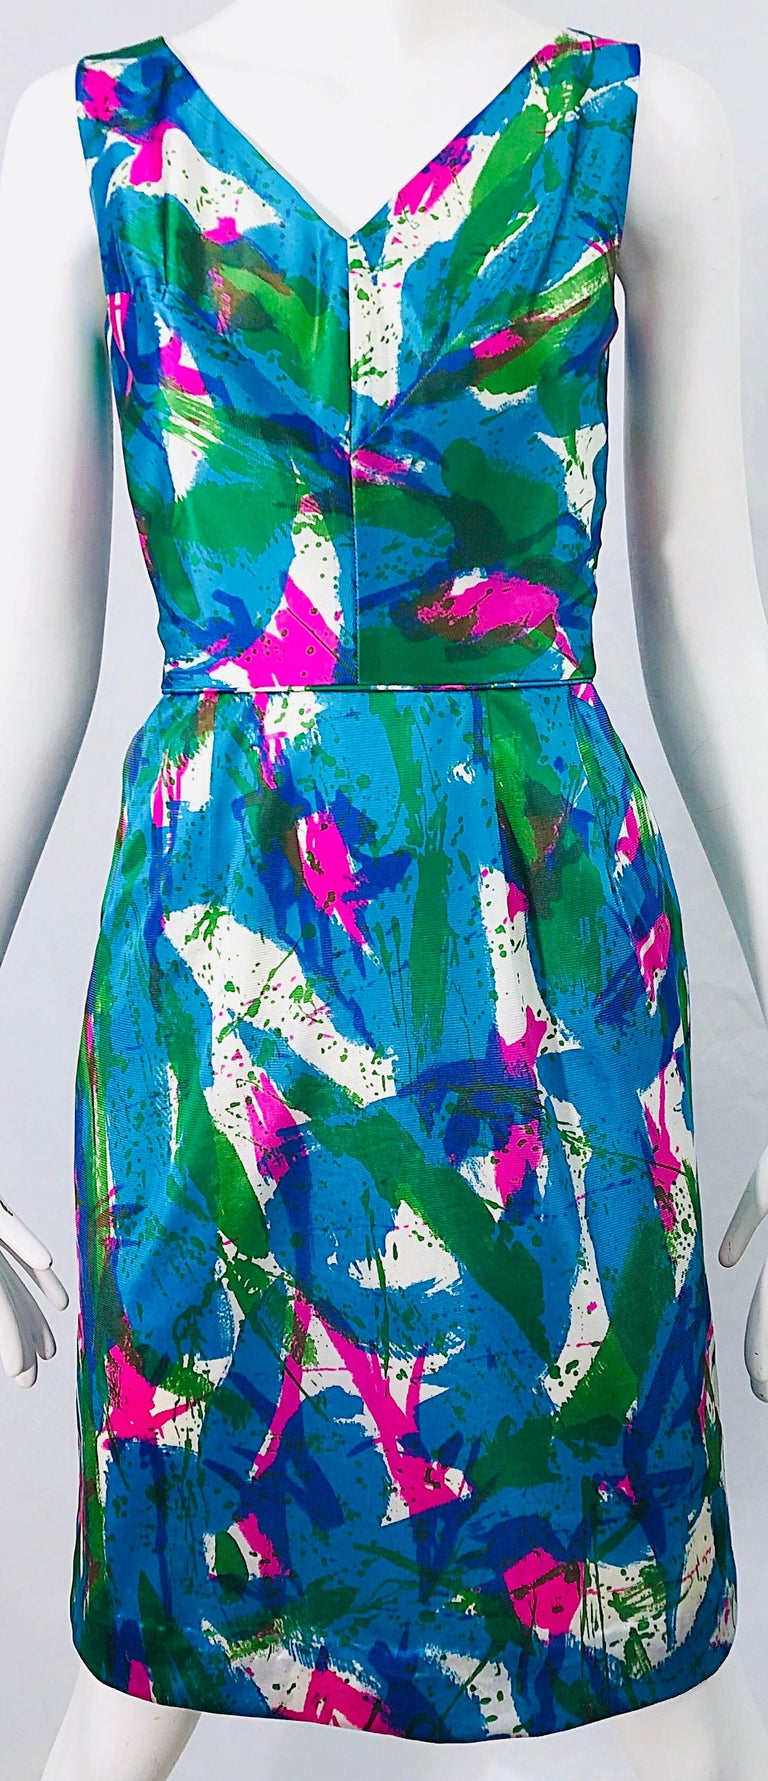 Women's Chic 1960s Neon Abstract Print Two Piece Vintage 60s Sheath Dress + Top Blouse  For Sale